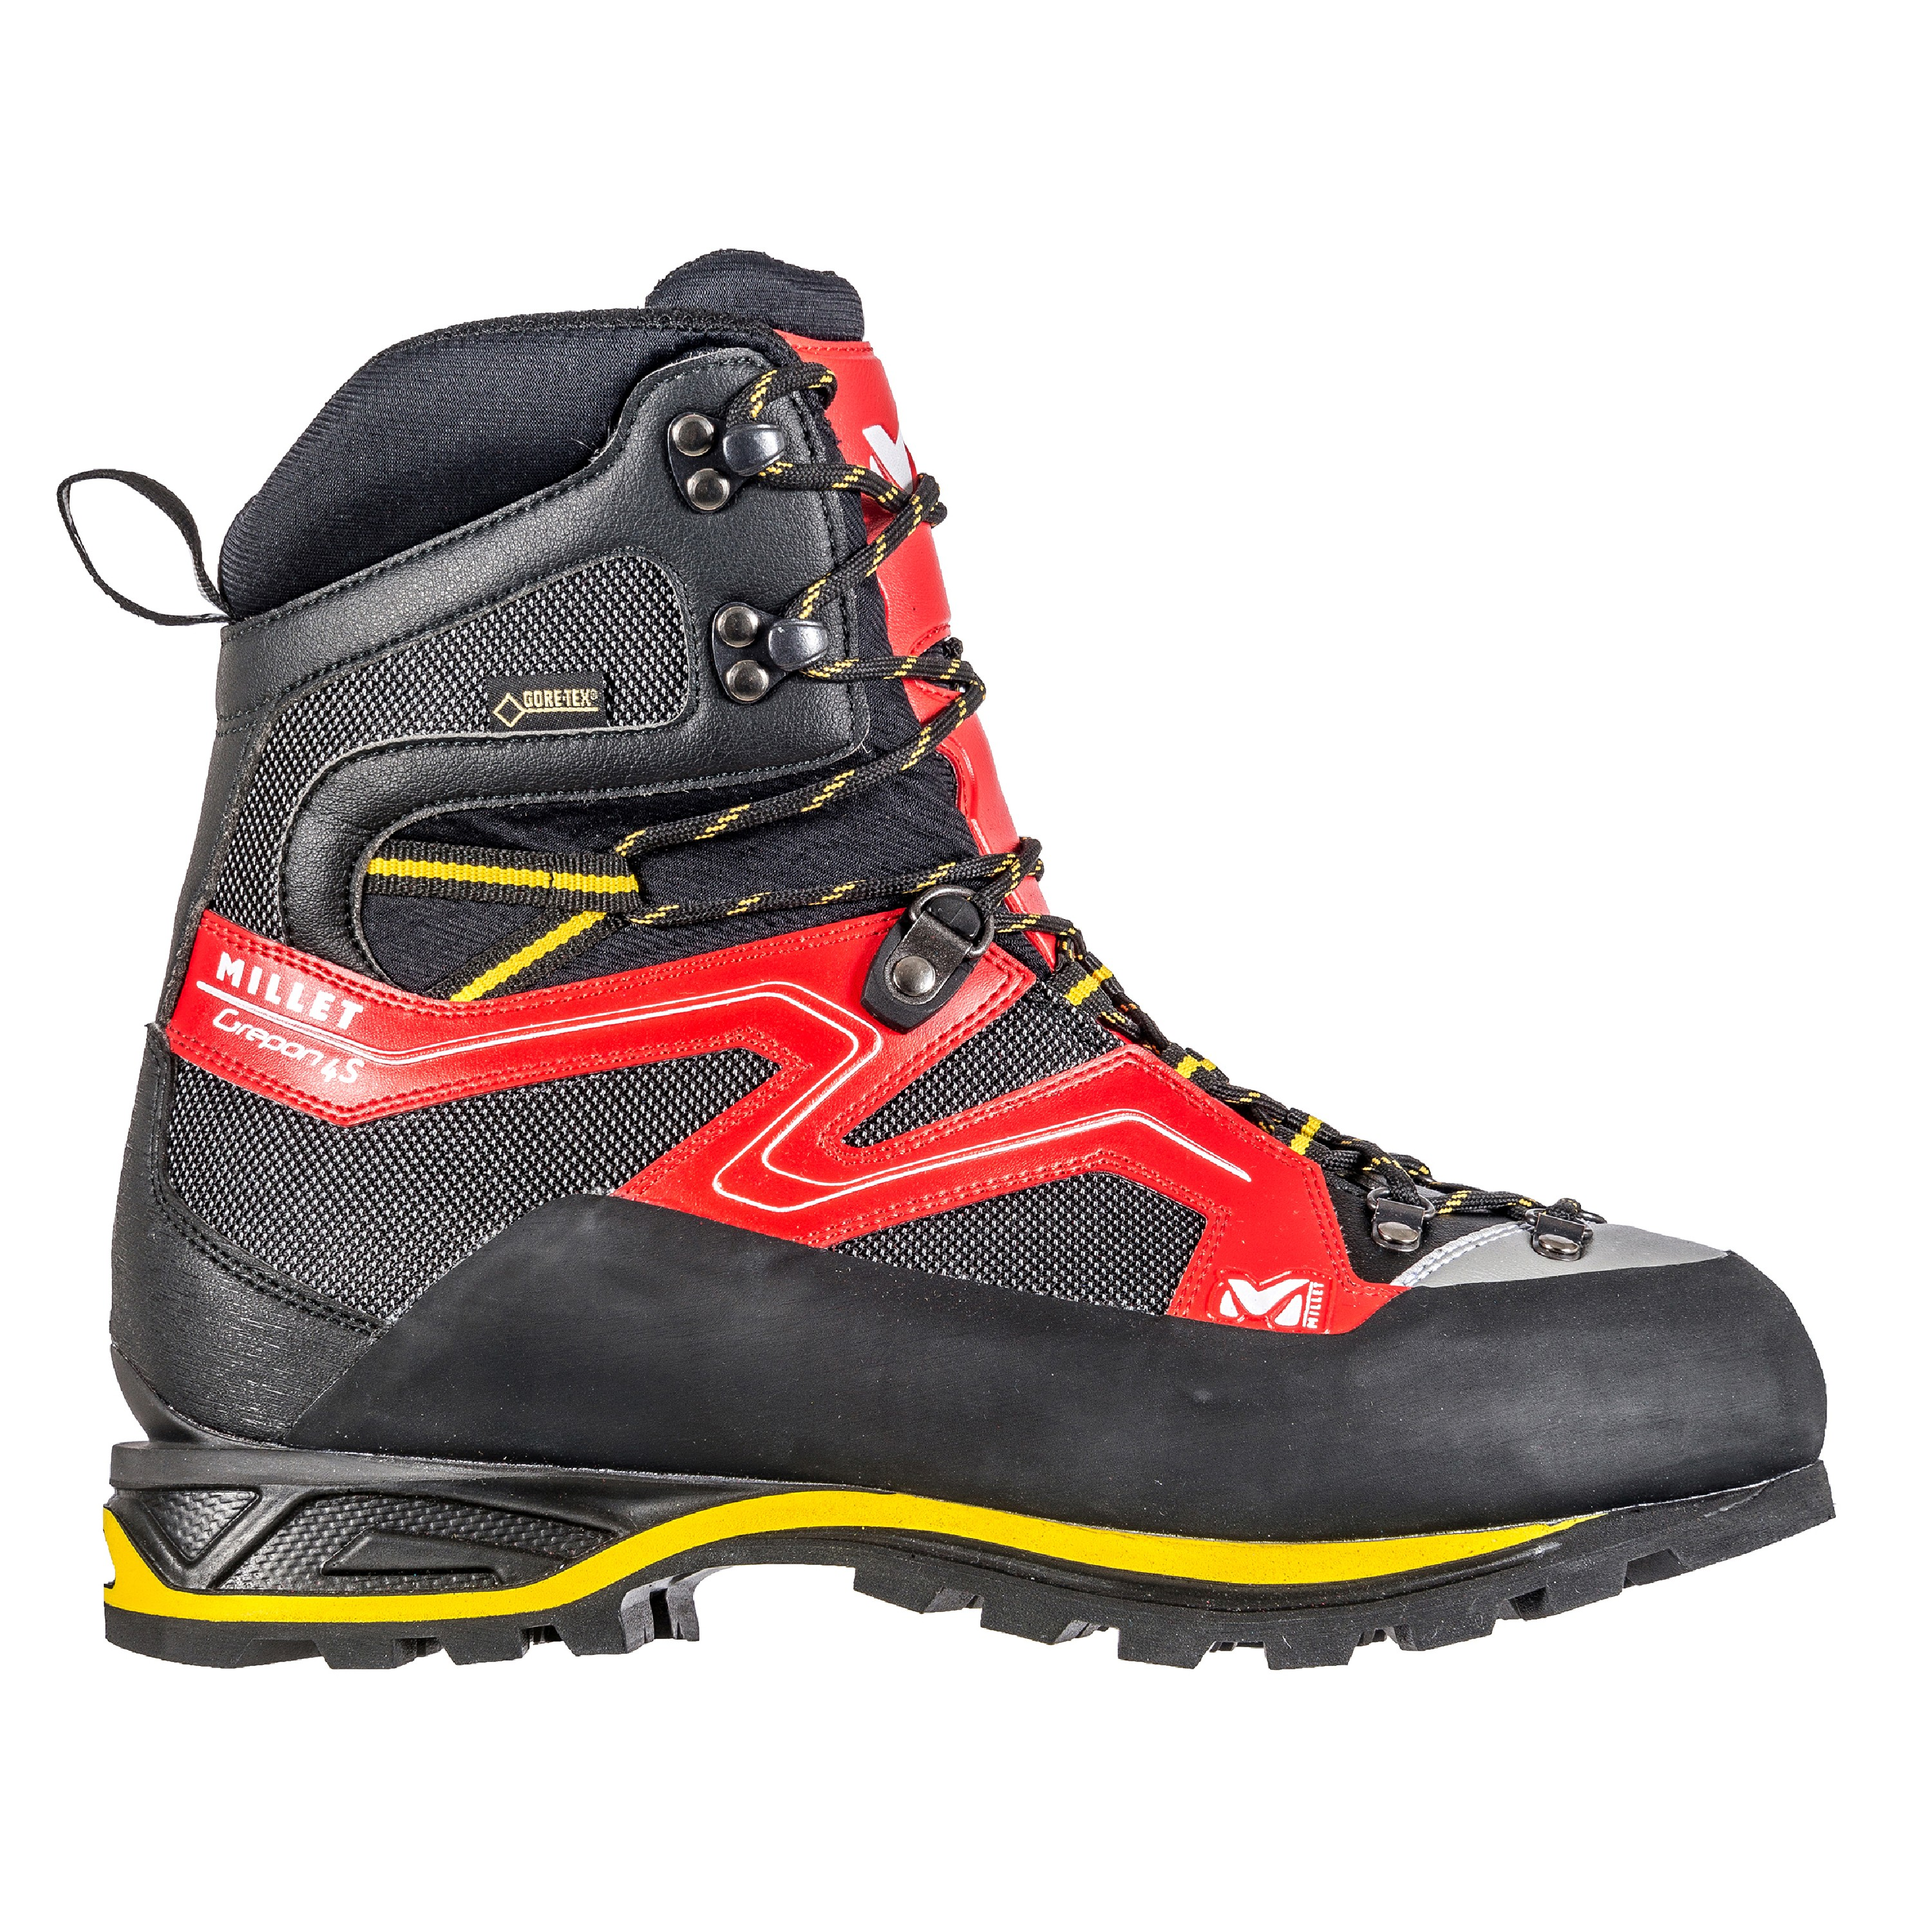 pas mal 5b497 42535 chaussure d approche vieux campeur,hoka one one challenger ...